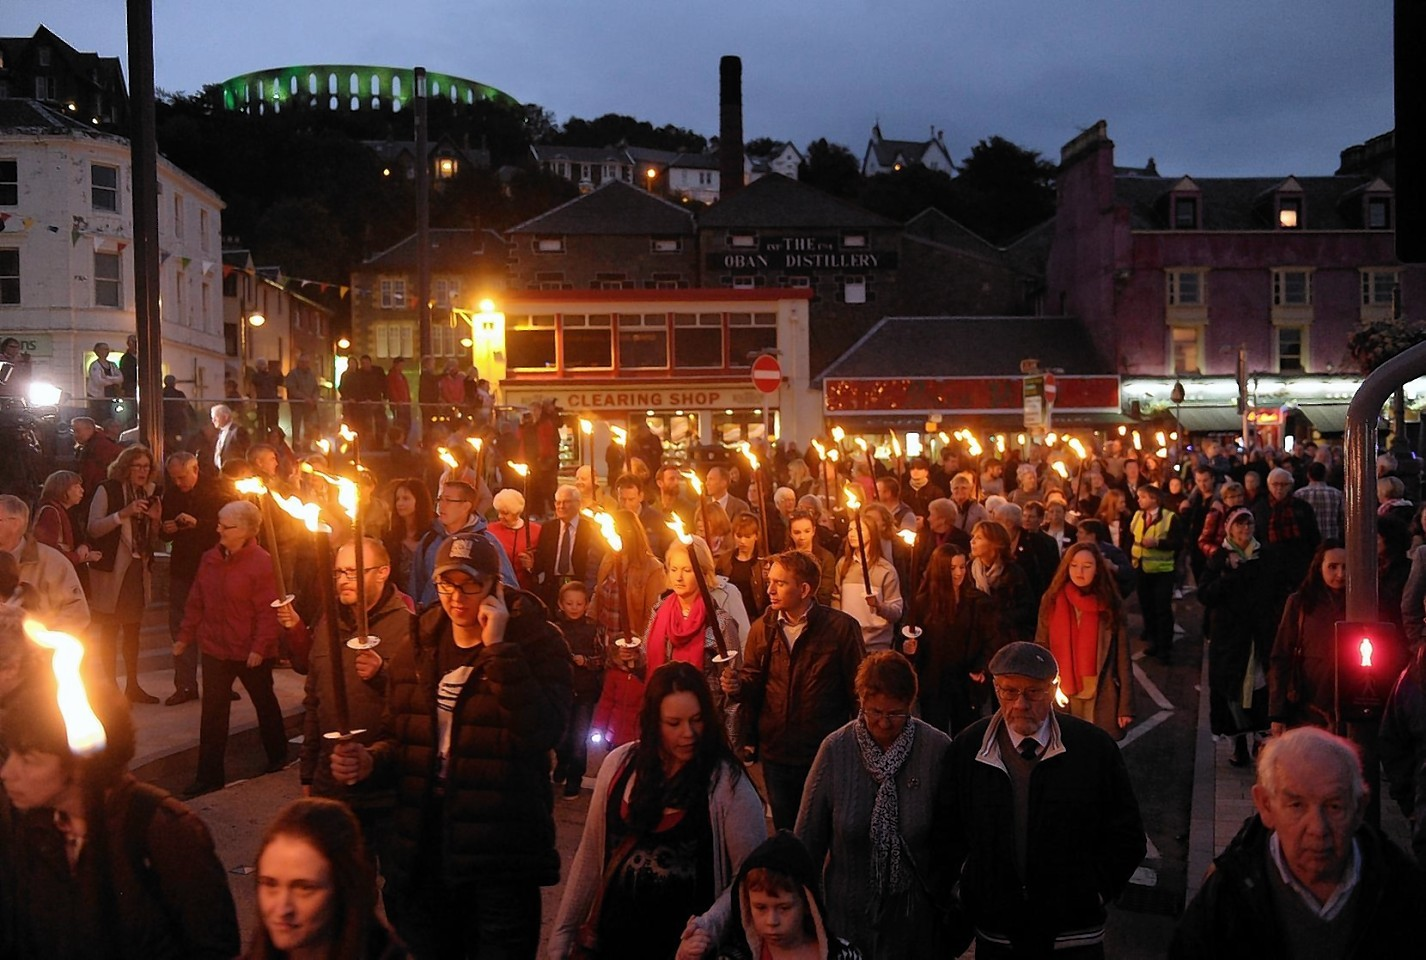 The openning torch light procession of the Royal National Mod makes its way through the streets of Oban